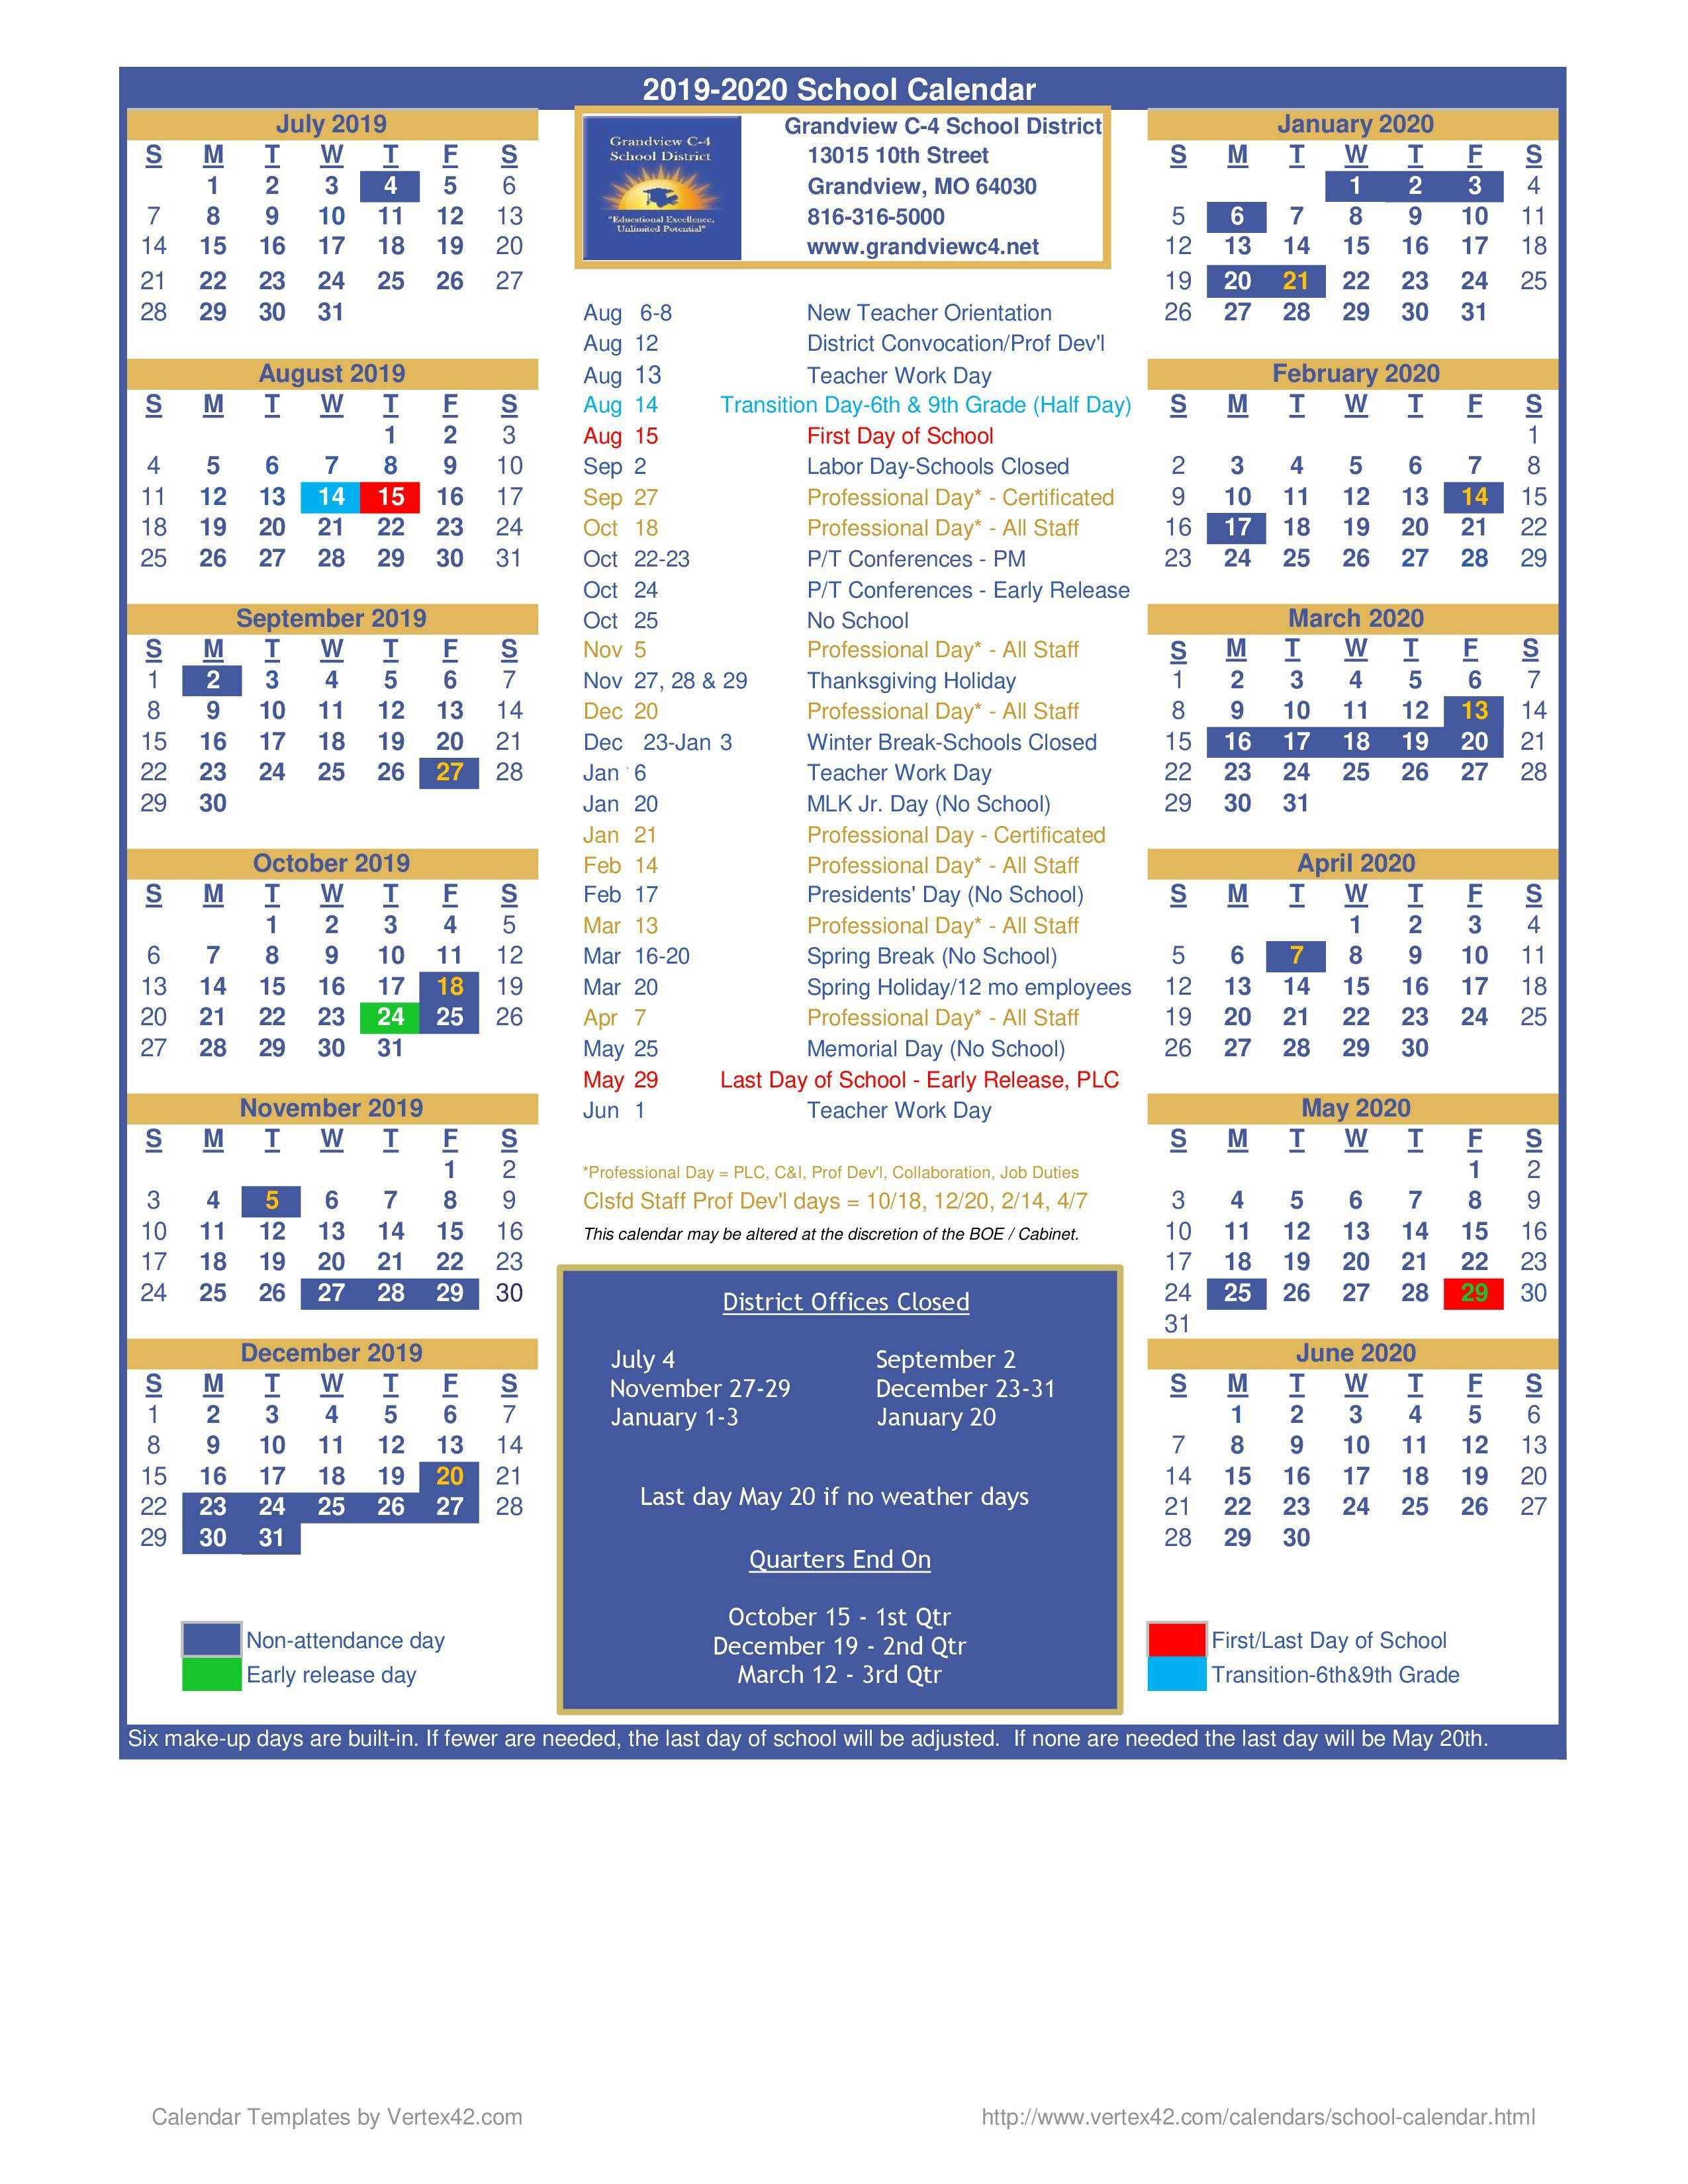 District Calendar – District Calendar – Grandview C-4 School